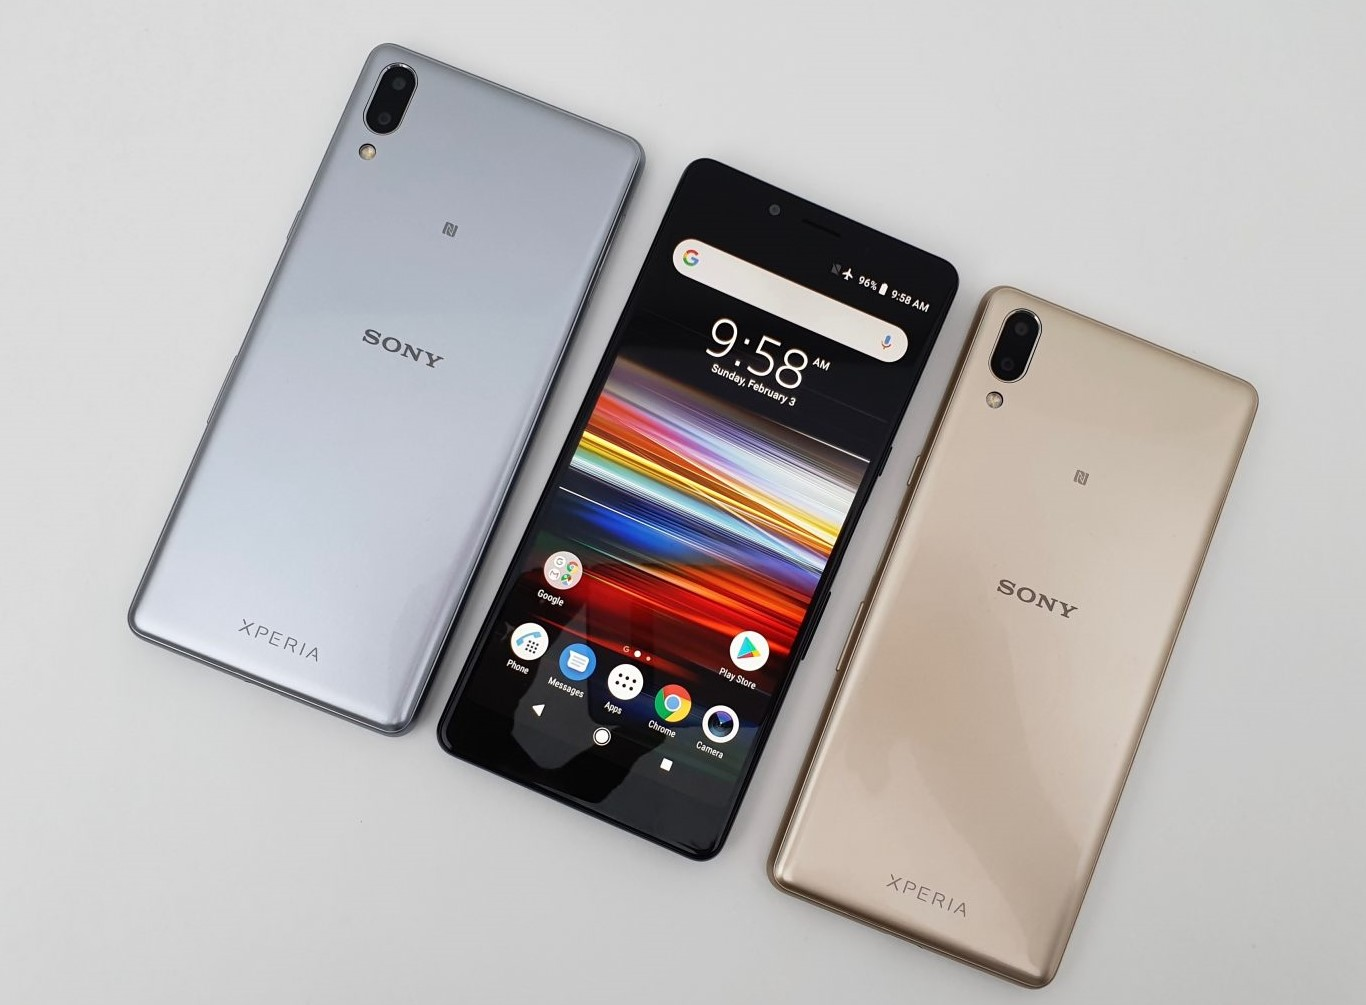 Sony Xperia L3 smartphone with 18 to 9 ratio display and silver and gold coloring on back